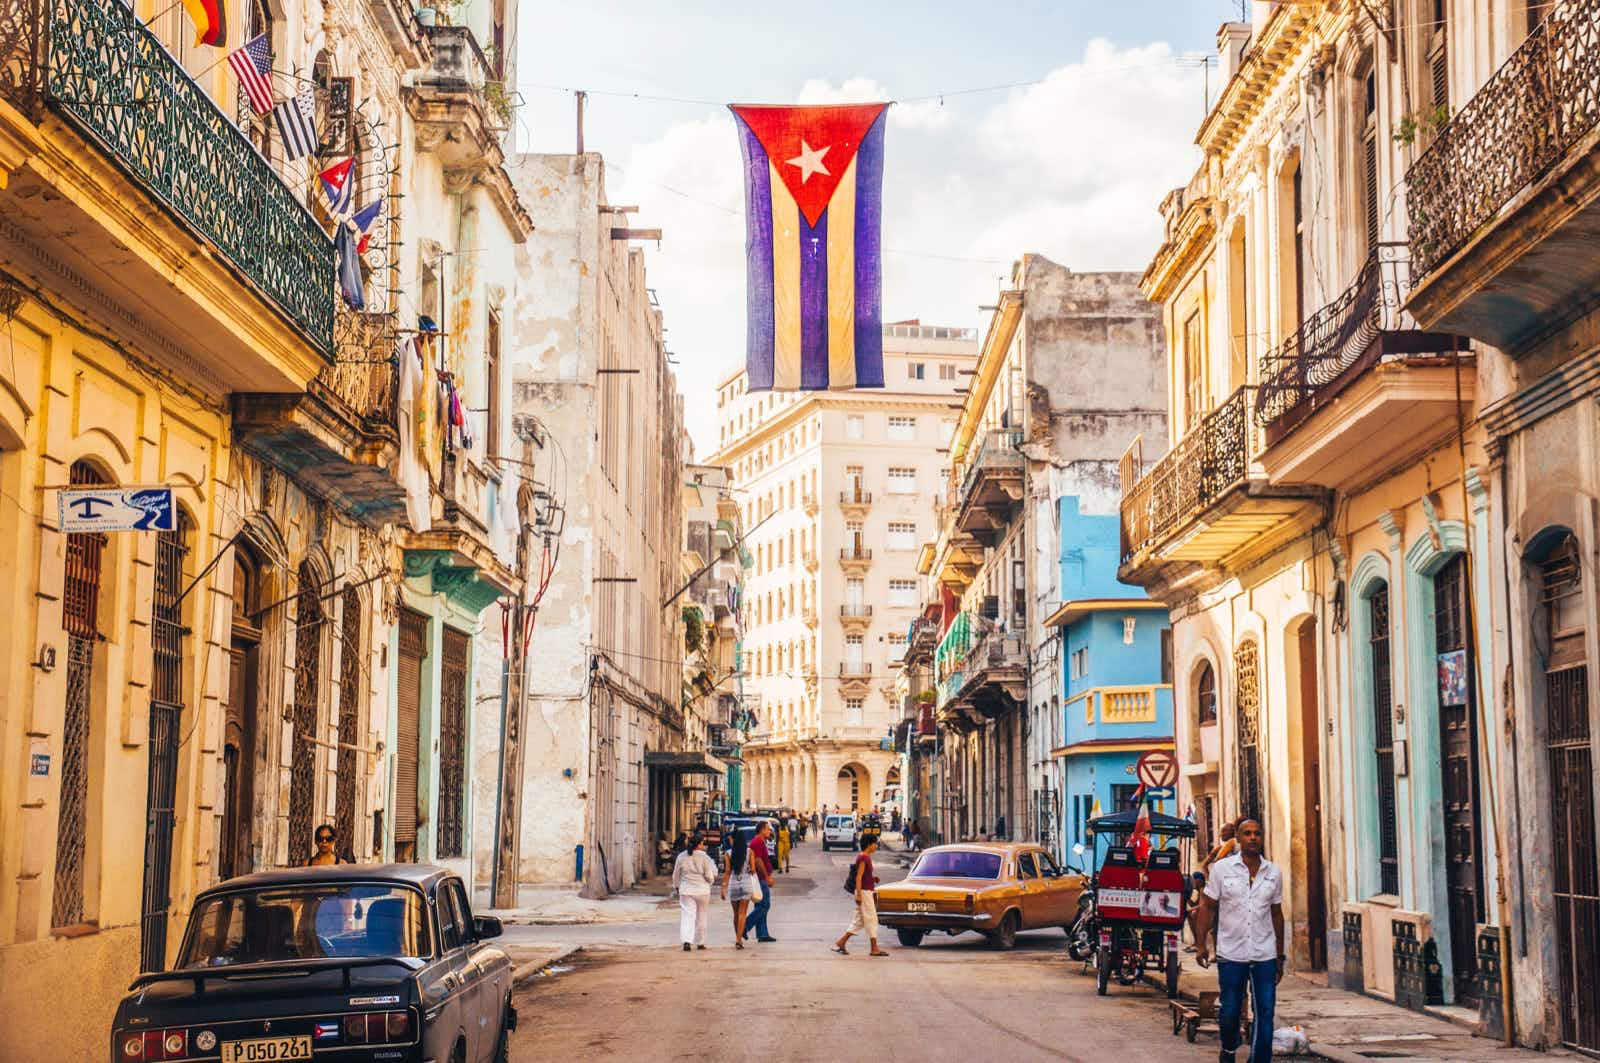 Havana, Cuba in December 2015: A cuban flag with holes waves over a street in Central Havana. La Habana, as the locals call it, is the capital city of Cuba; Shutterstock ID 412724059; Your name (First / Last): William Broich; GL account no.: 65050; Netsuite department name: Editorial ; Full Product or Project name including edition: How to travel responsibly in Havana